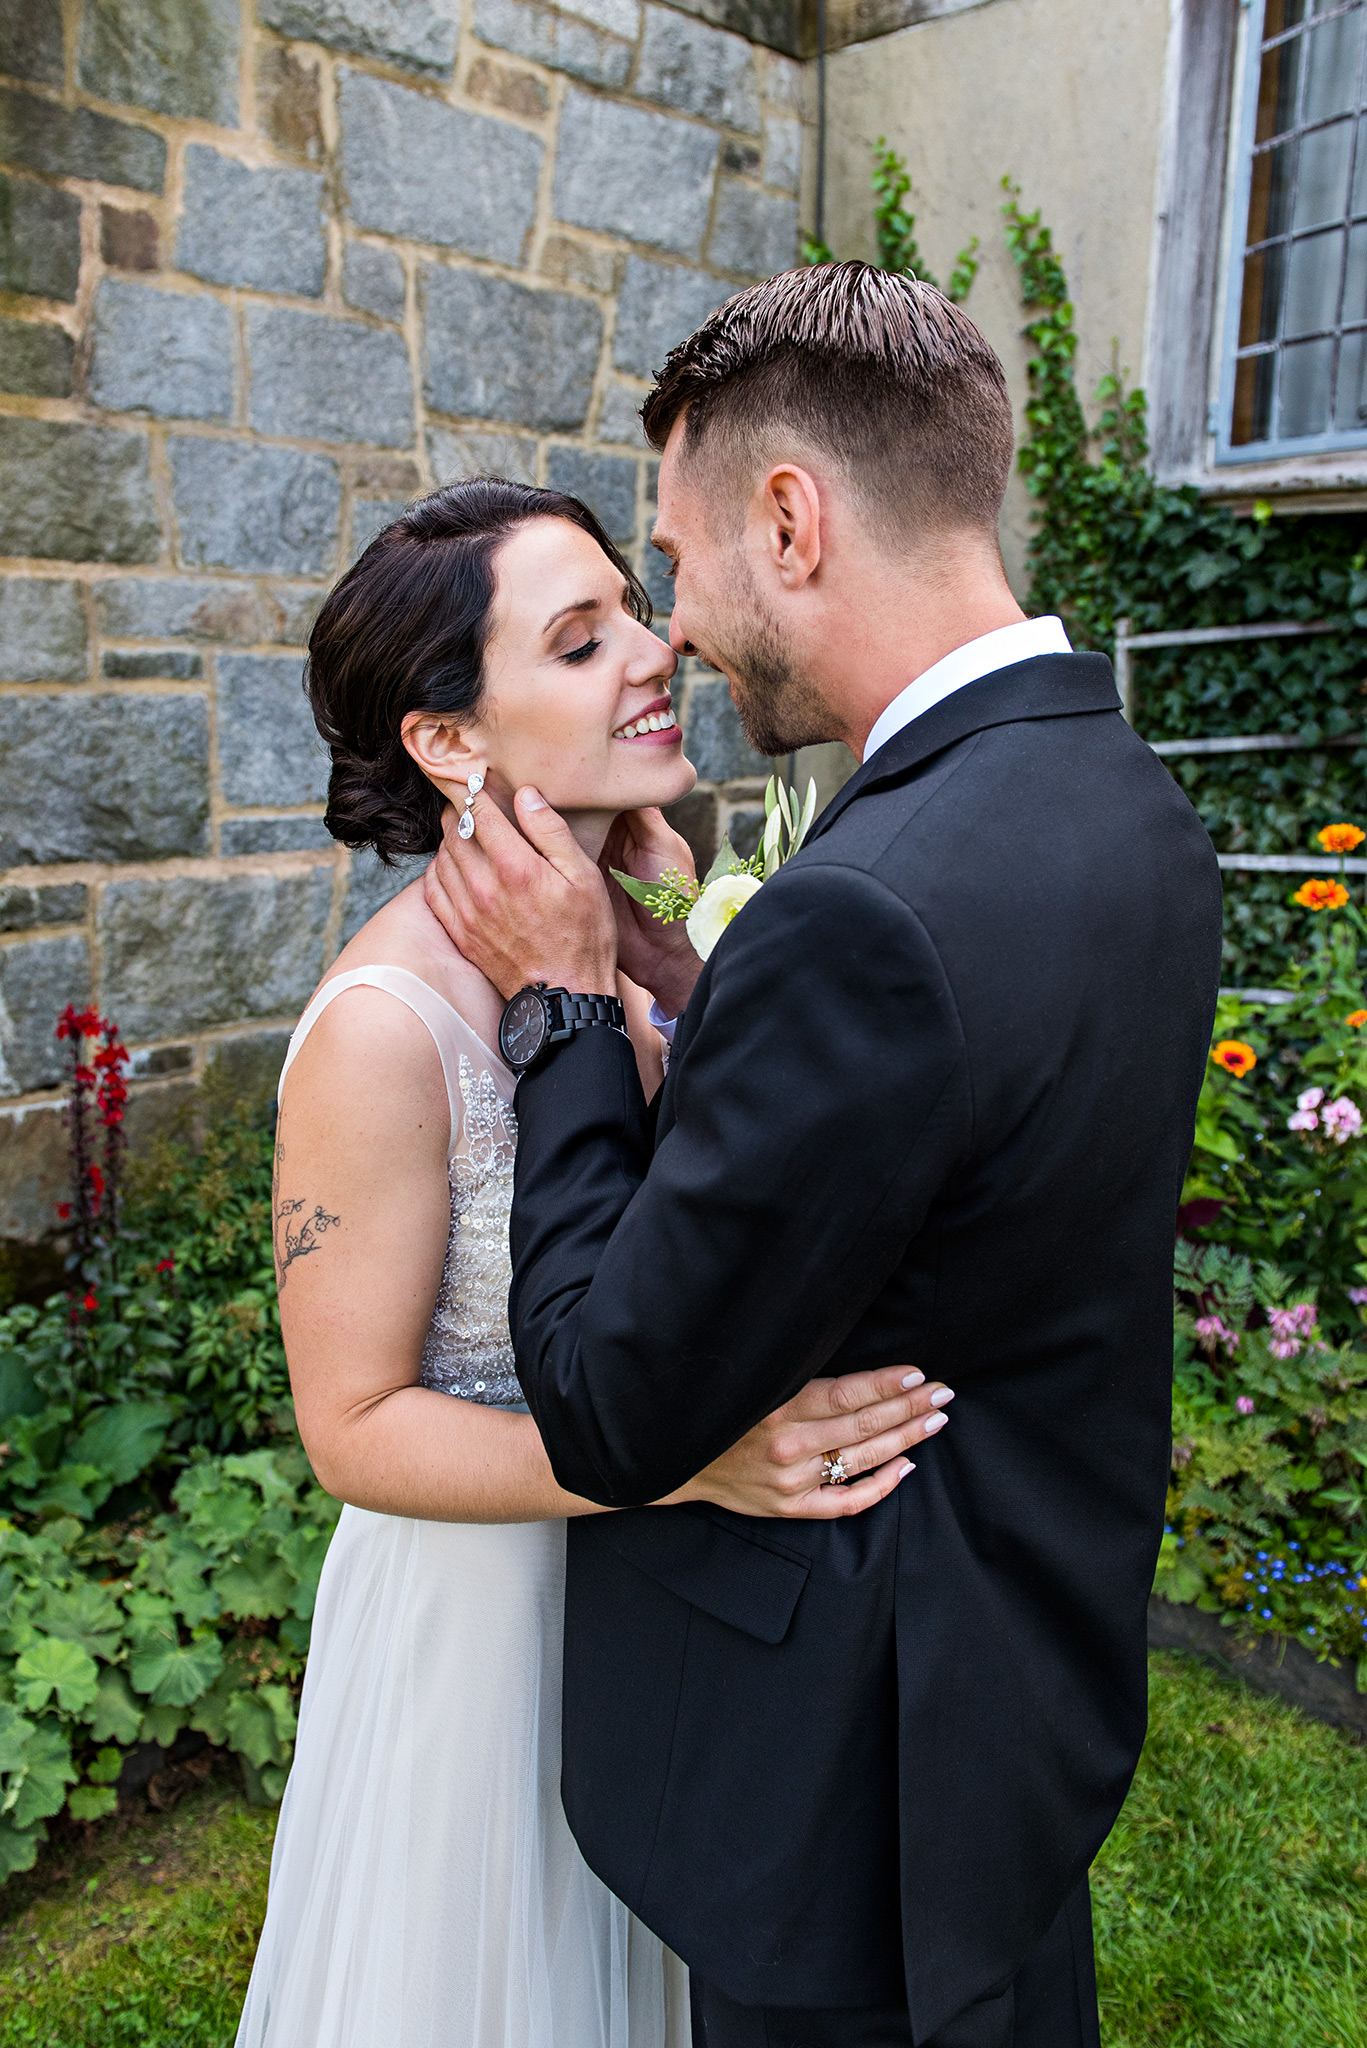 wedding photography topsmead. ct wedding photographer litchfield, ct